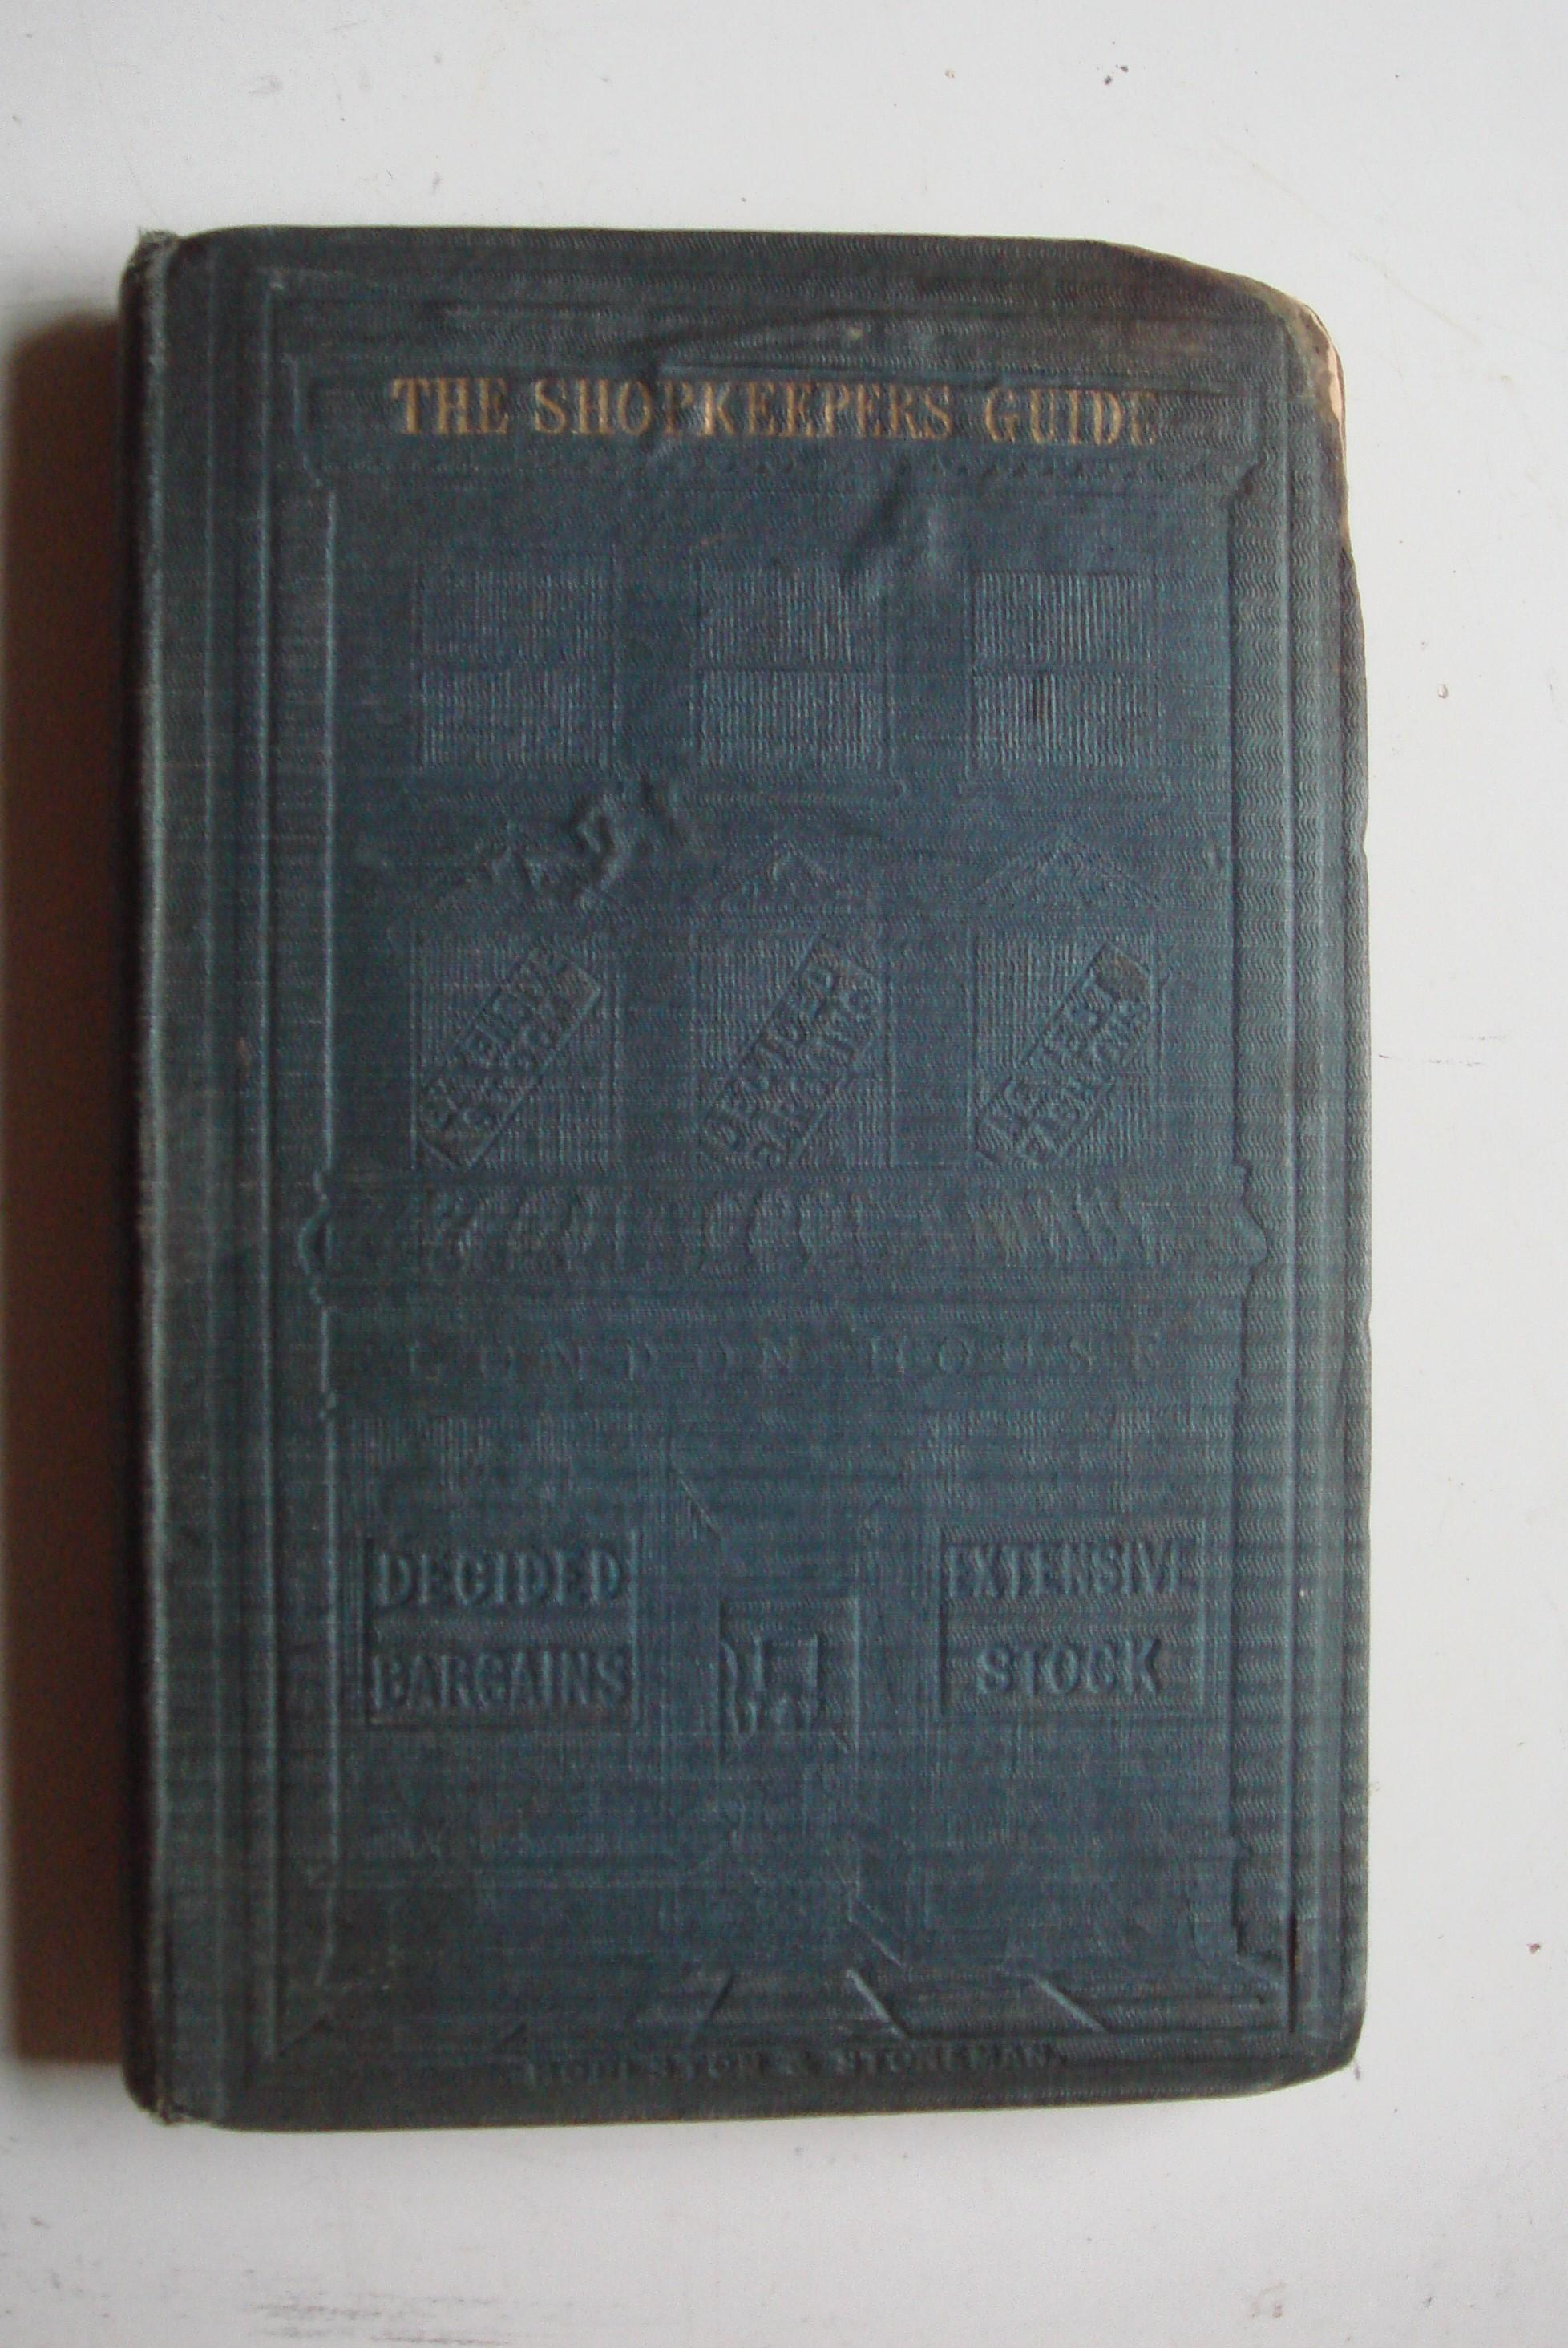 The Shopkeepers Guide. Original Hard Cover Copy Published 1853.